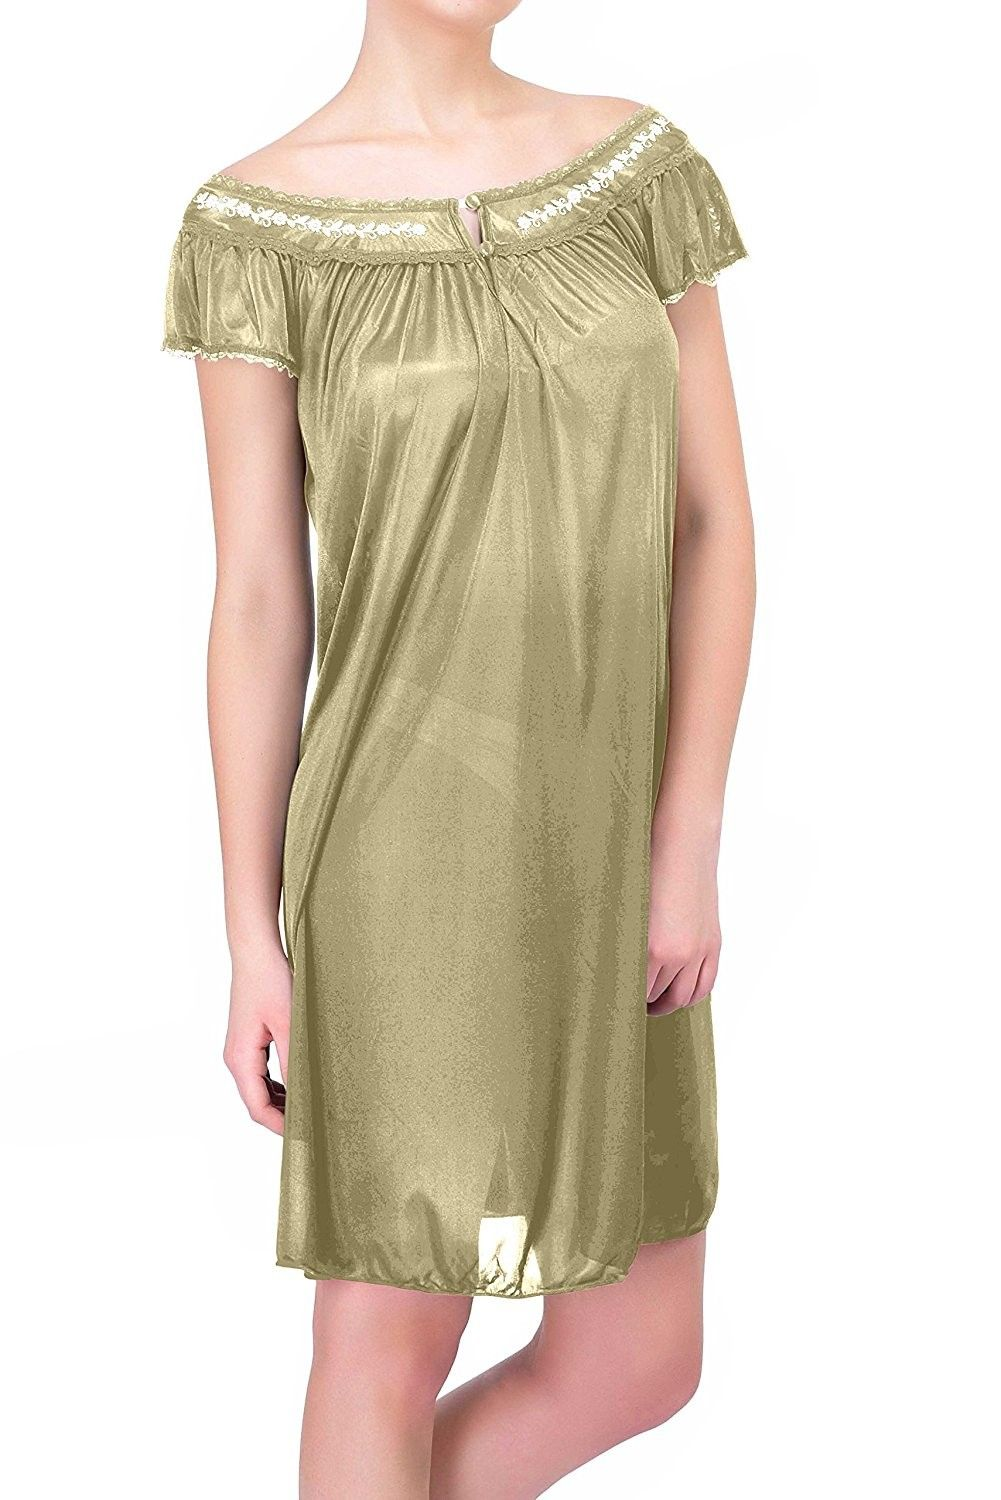 90c66b573bee Womens Satin Silk Short Sleeve Lingerie Nightgown - Greenyellow -  CL11OREDE7X